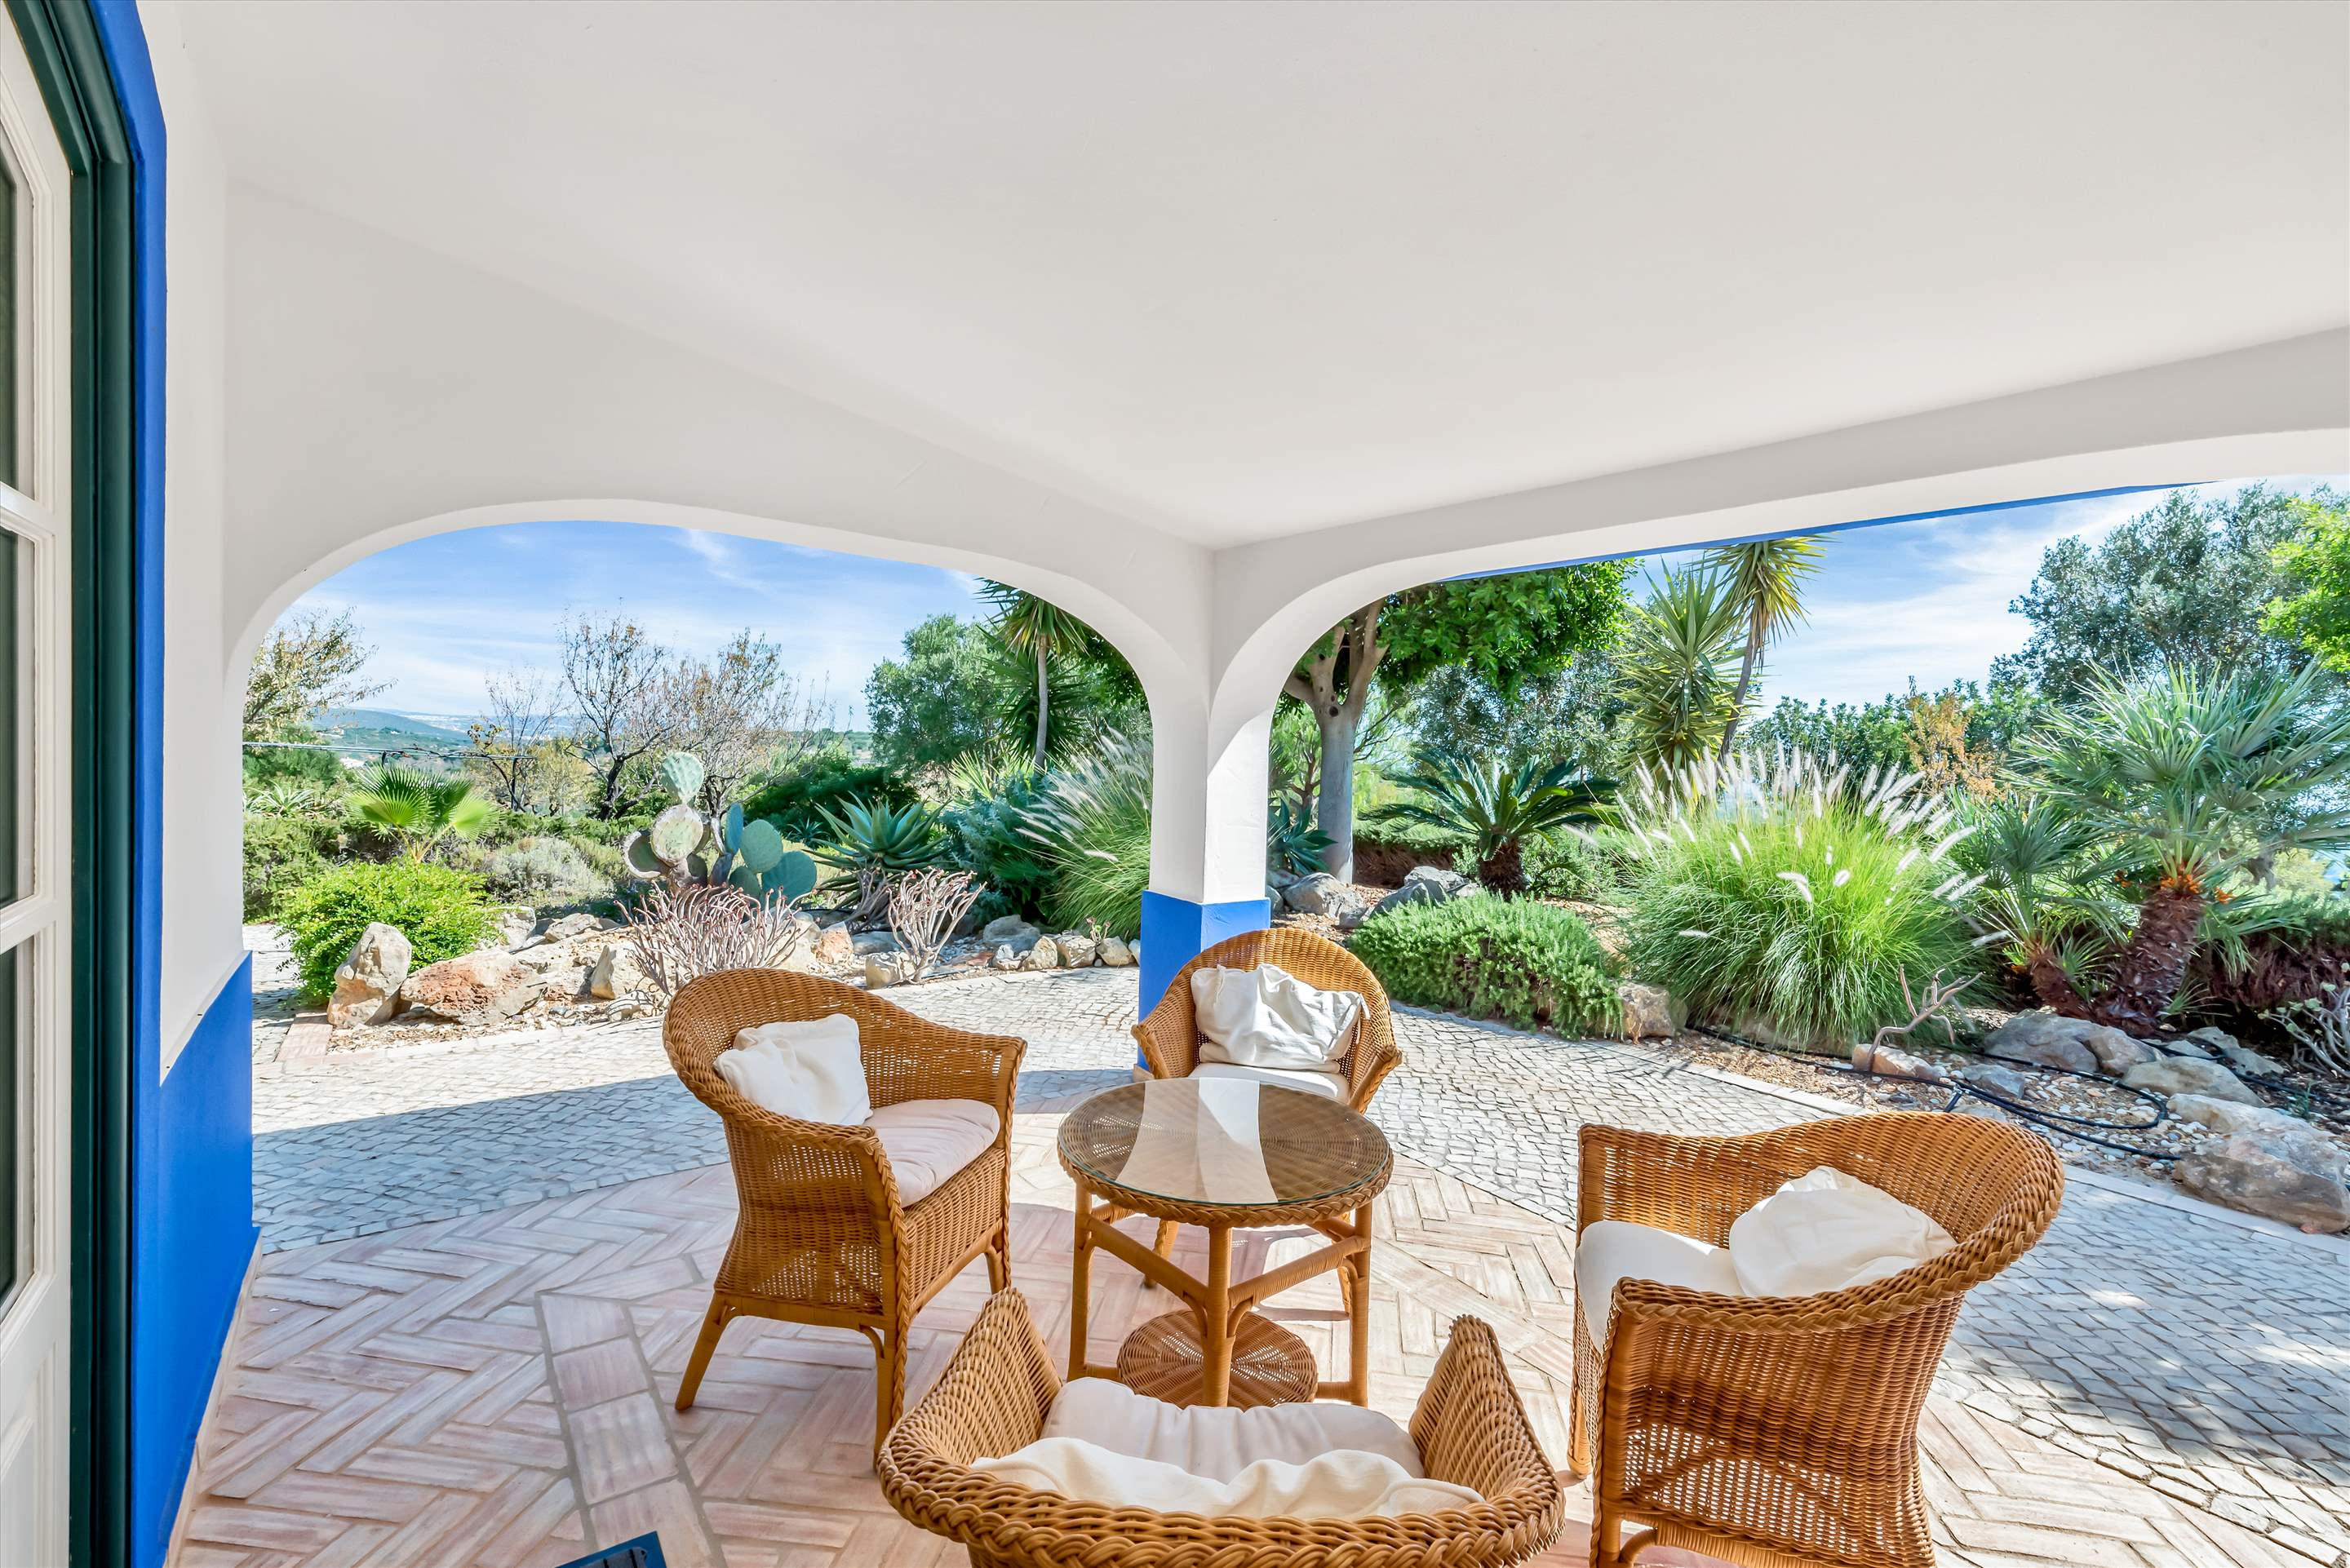 Casa Alemao, Main House, 5 Bedrooms, 5 bedroom villa in Vilamoura Area, Algarve Photo #19